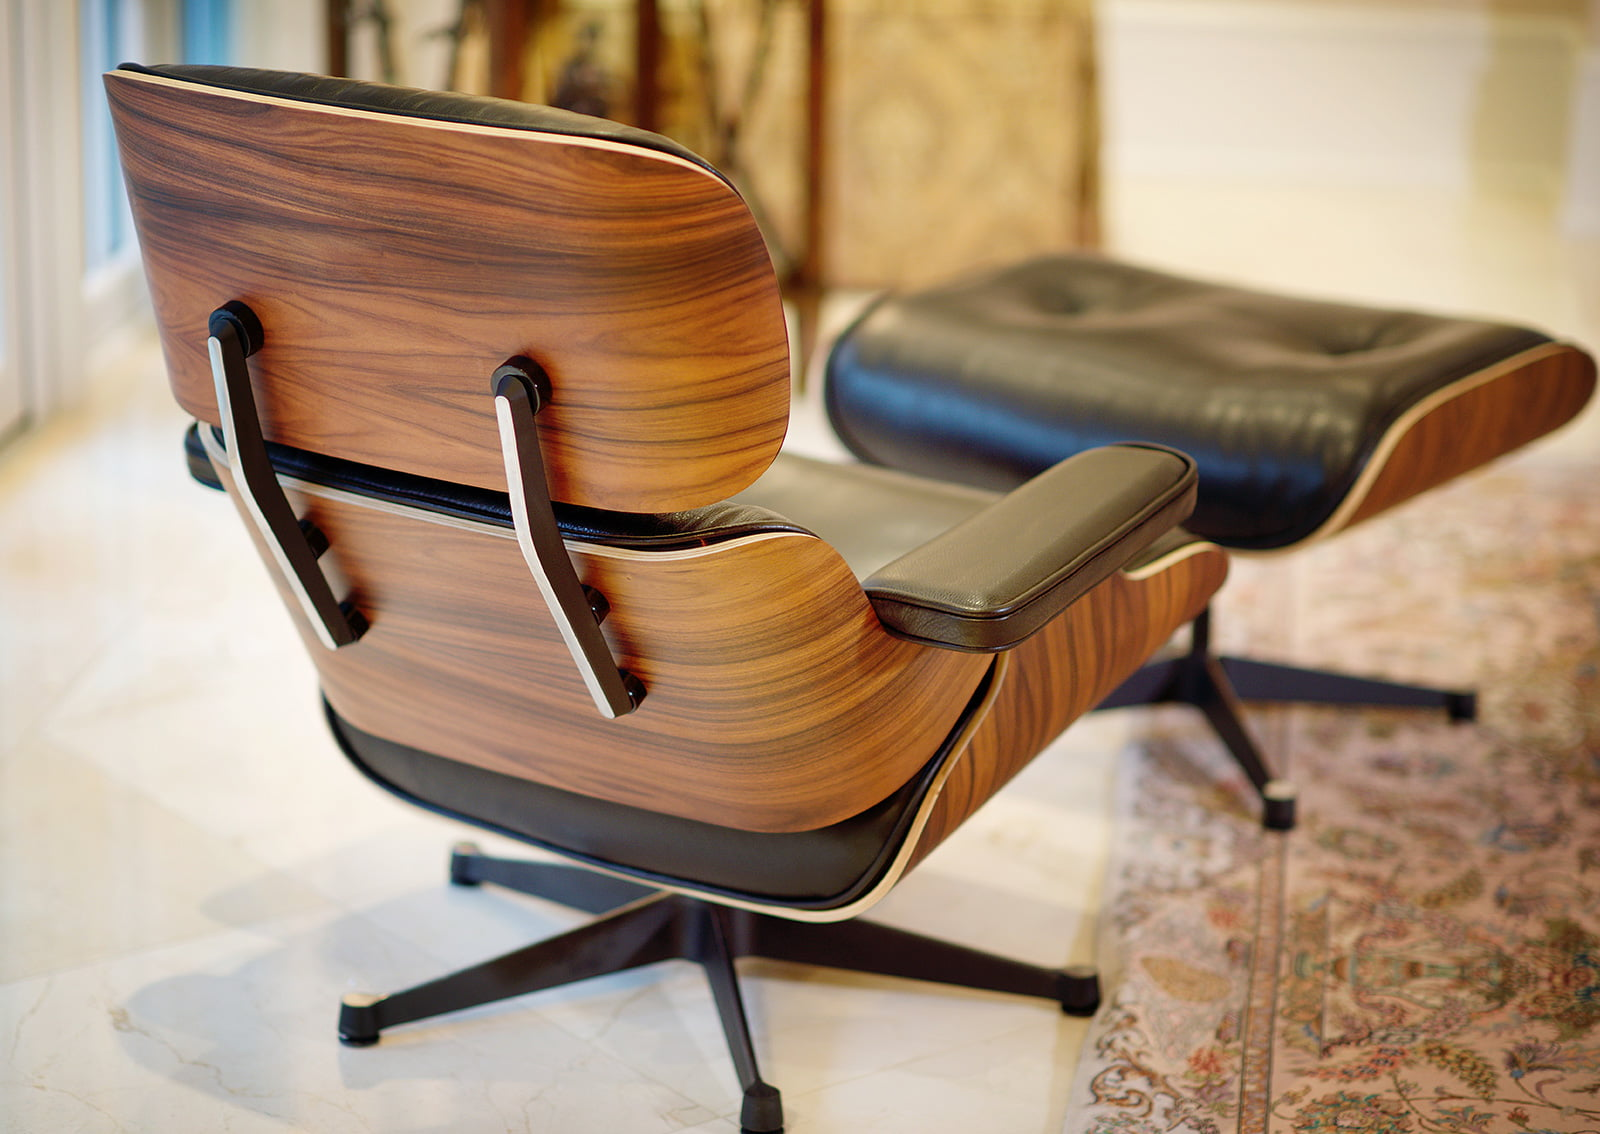 Vitra Lounge Chair Replica eames chairs | eames lounge chair with ottoman - furnishplus